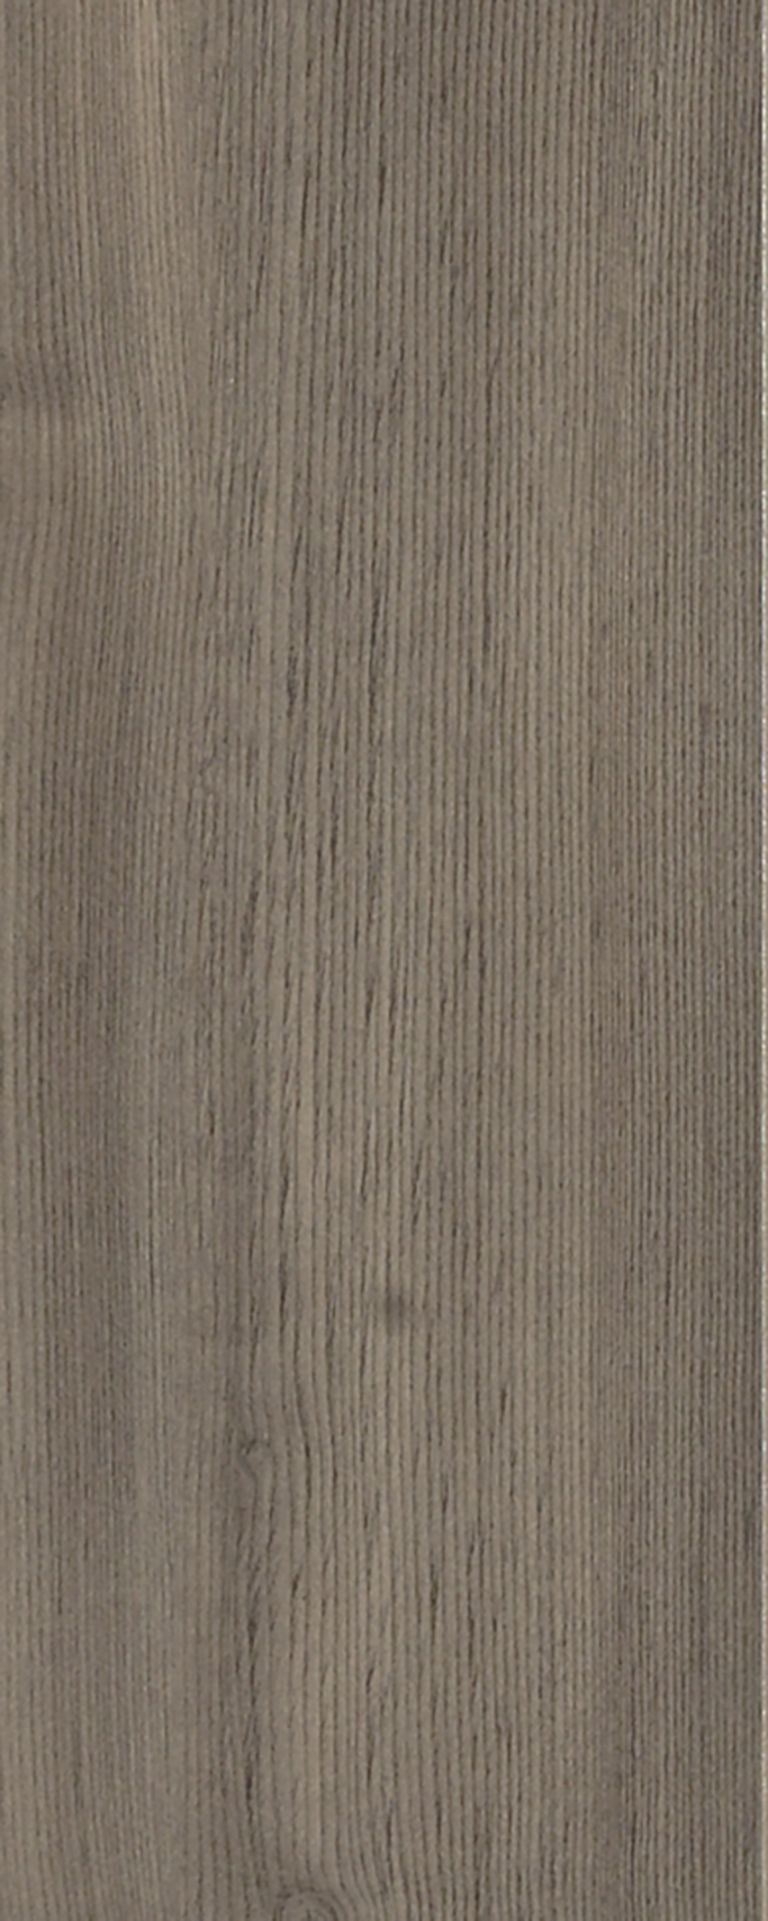 Oyster Bay Pine Laminate L3052